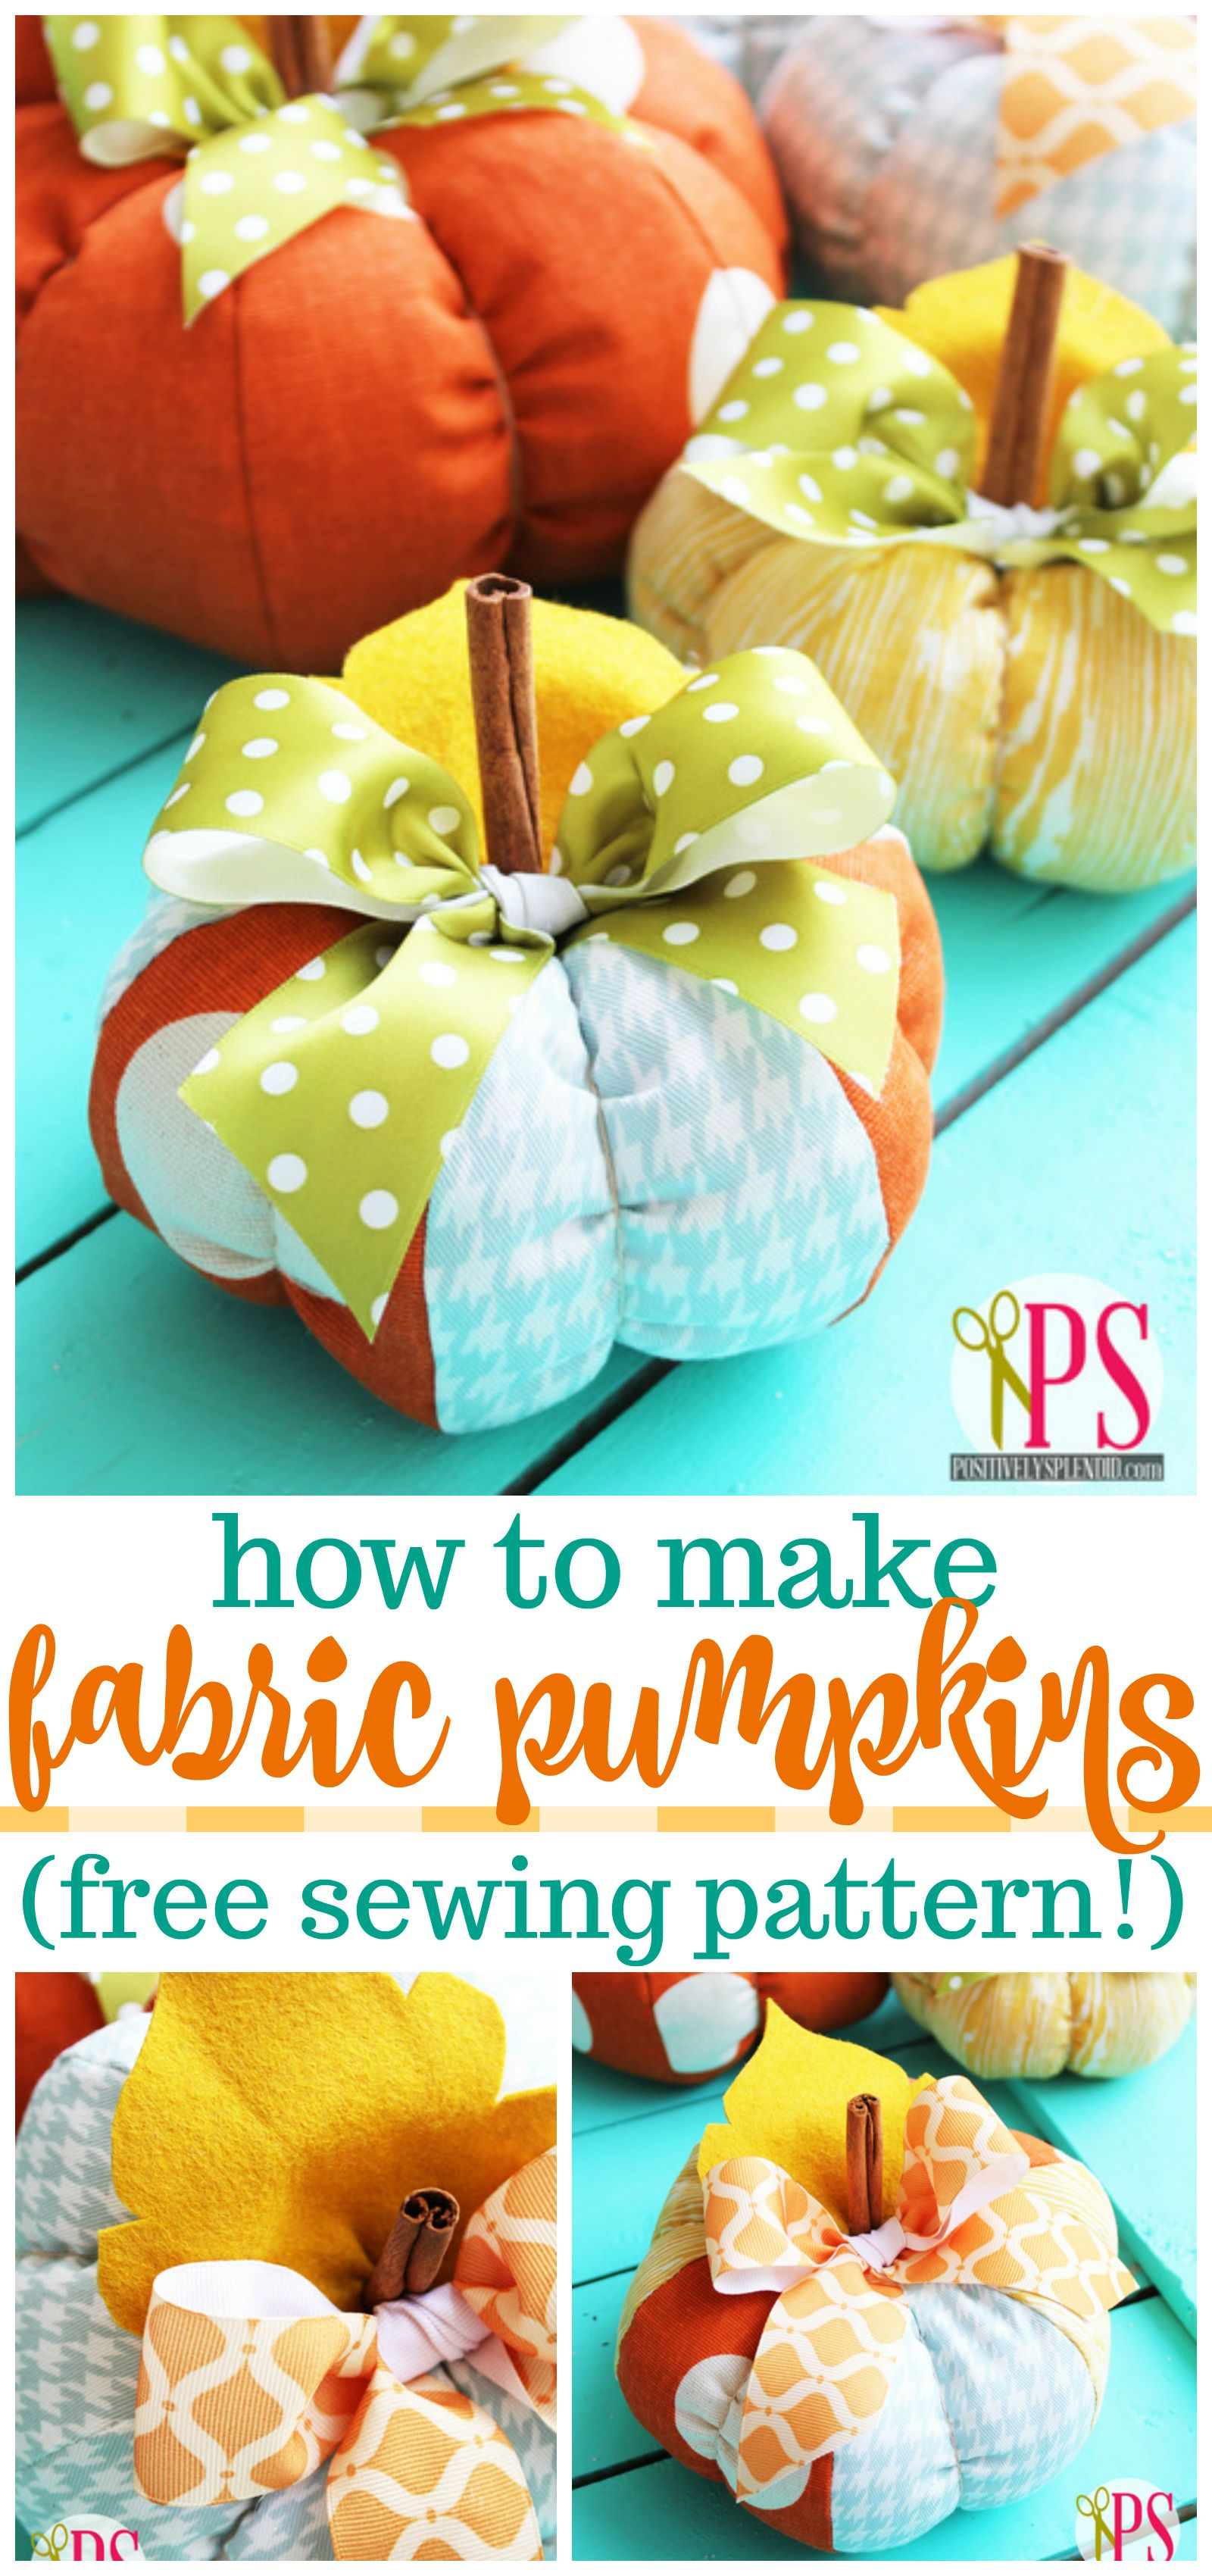 Diy fabric pumpkin pattern a fun and easy fall decor project diy fabric pumpkin pattern and tutorial a great free sewing pattern for beginners jeuxipadfo Gallery